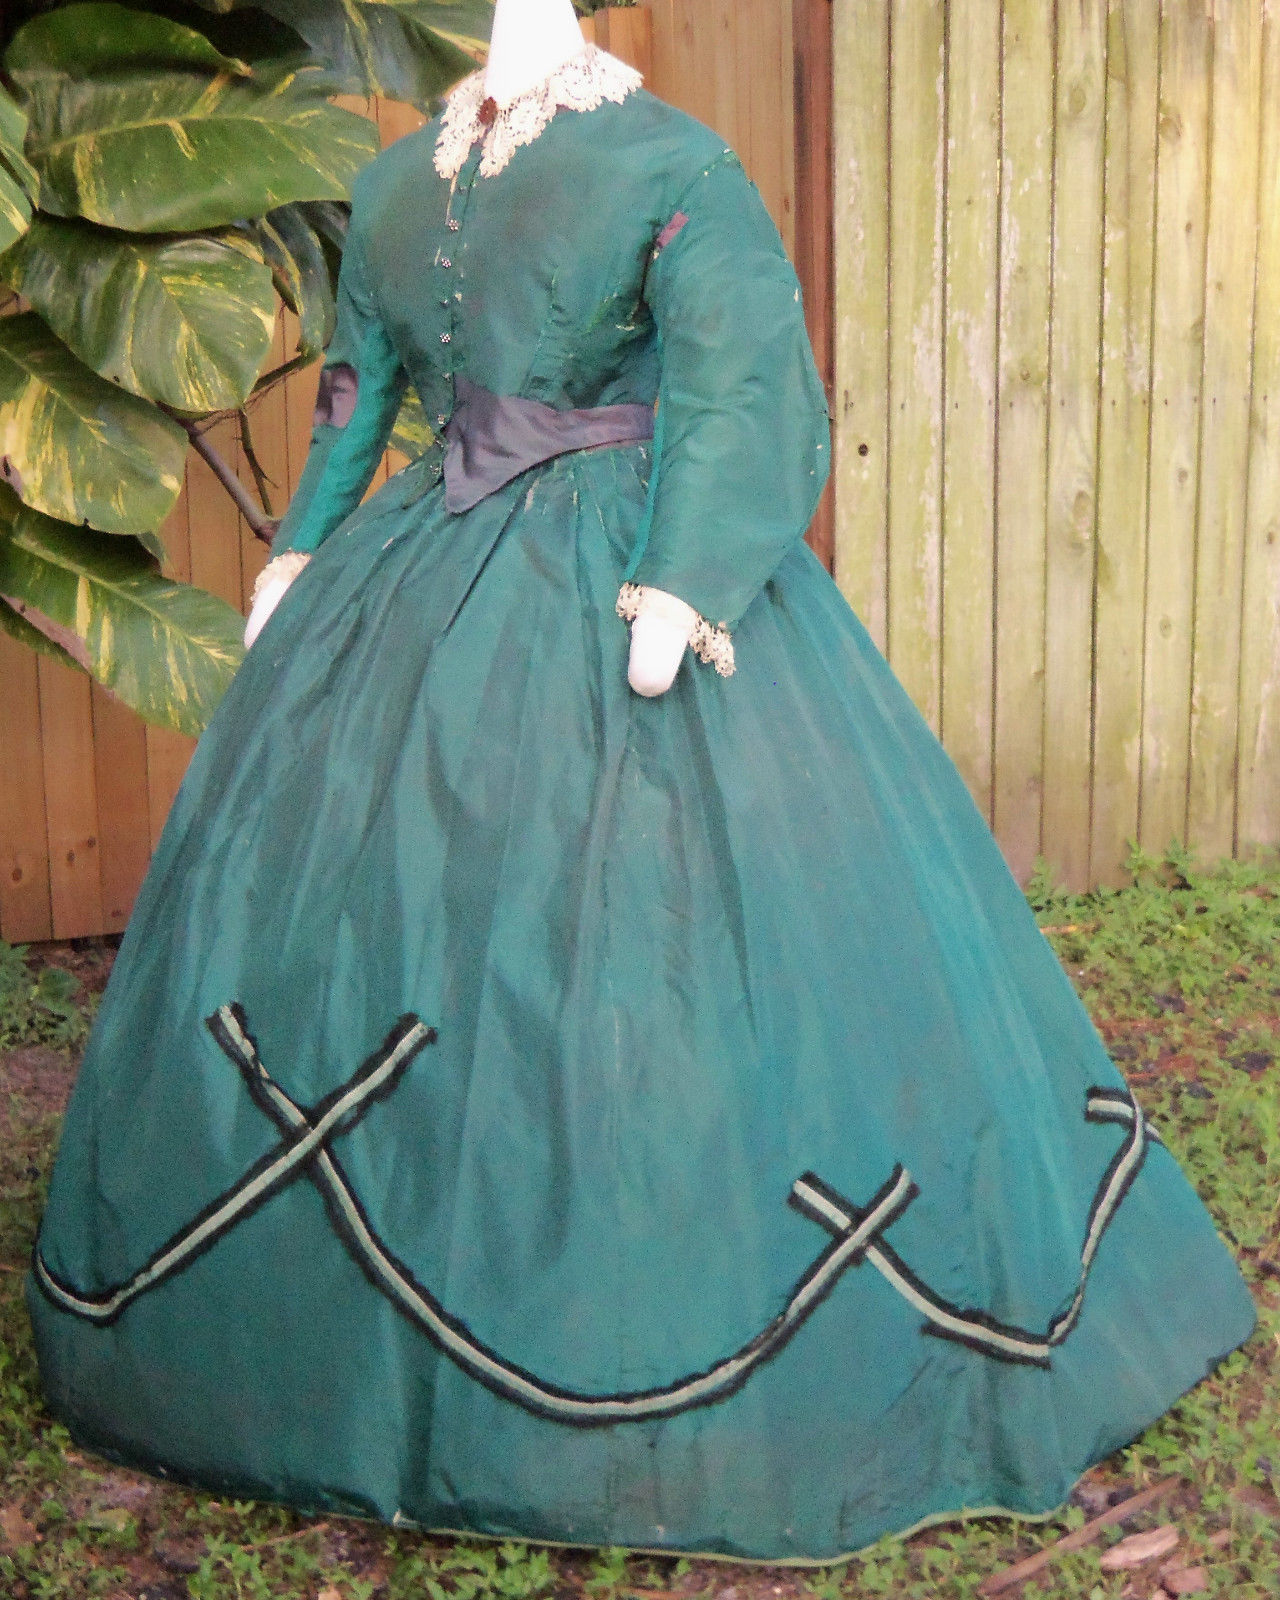 All The Pretty Dresses: American Civil War Era Green Dress Pieced